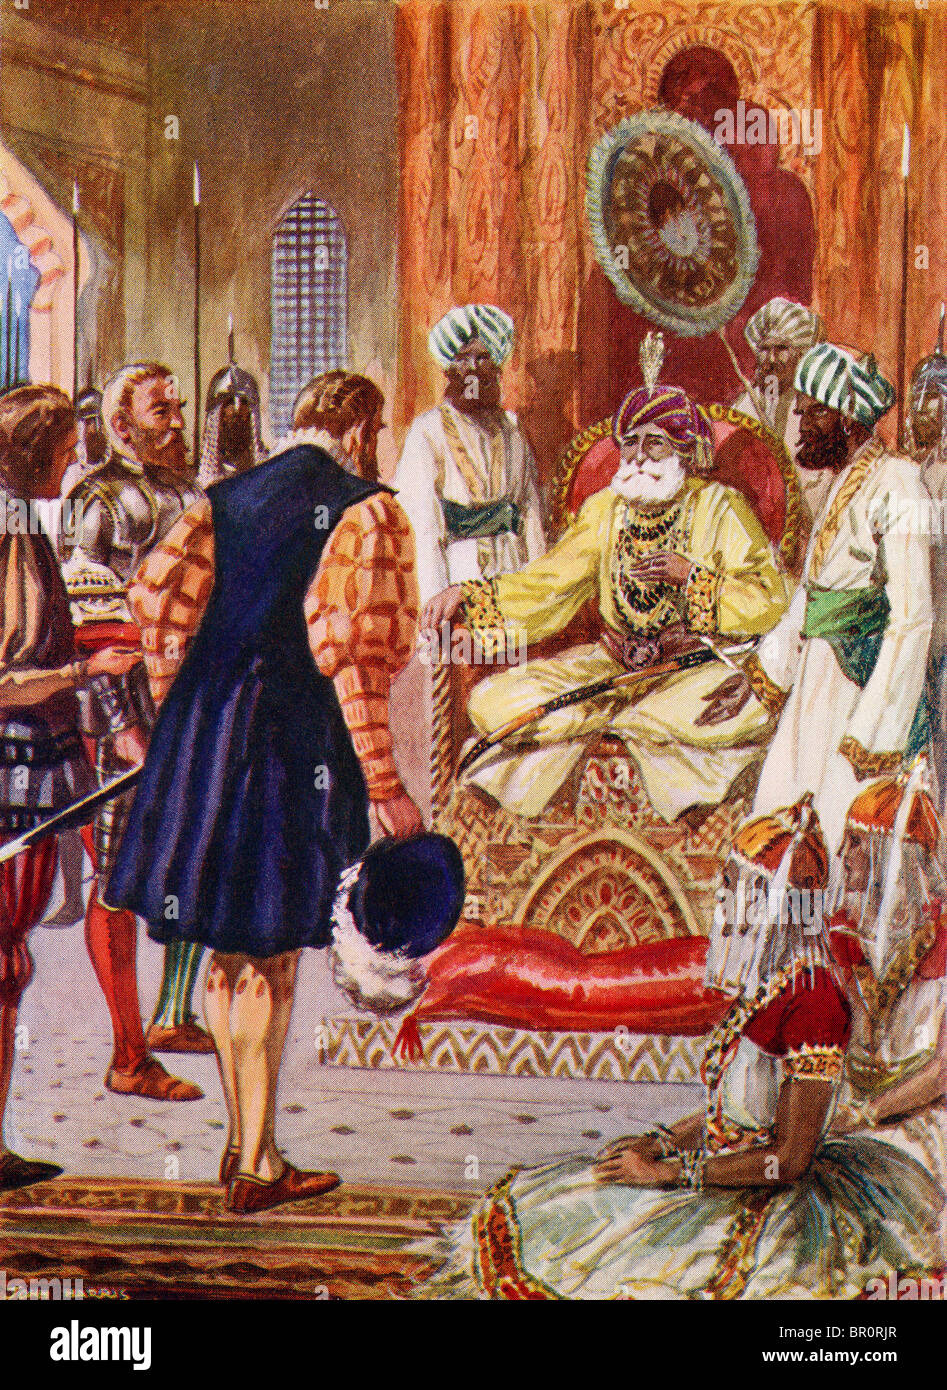 Vasco Da Gama visiting the Rajah of Cannanore, India in 1498. Vasco da  Gama, 1st Count of Vidigueira, c.1460 or 1469 to 1524.